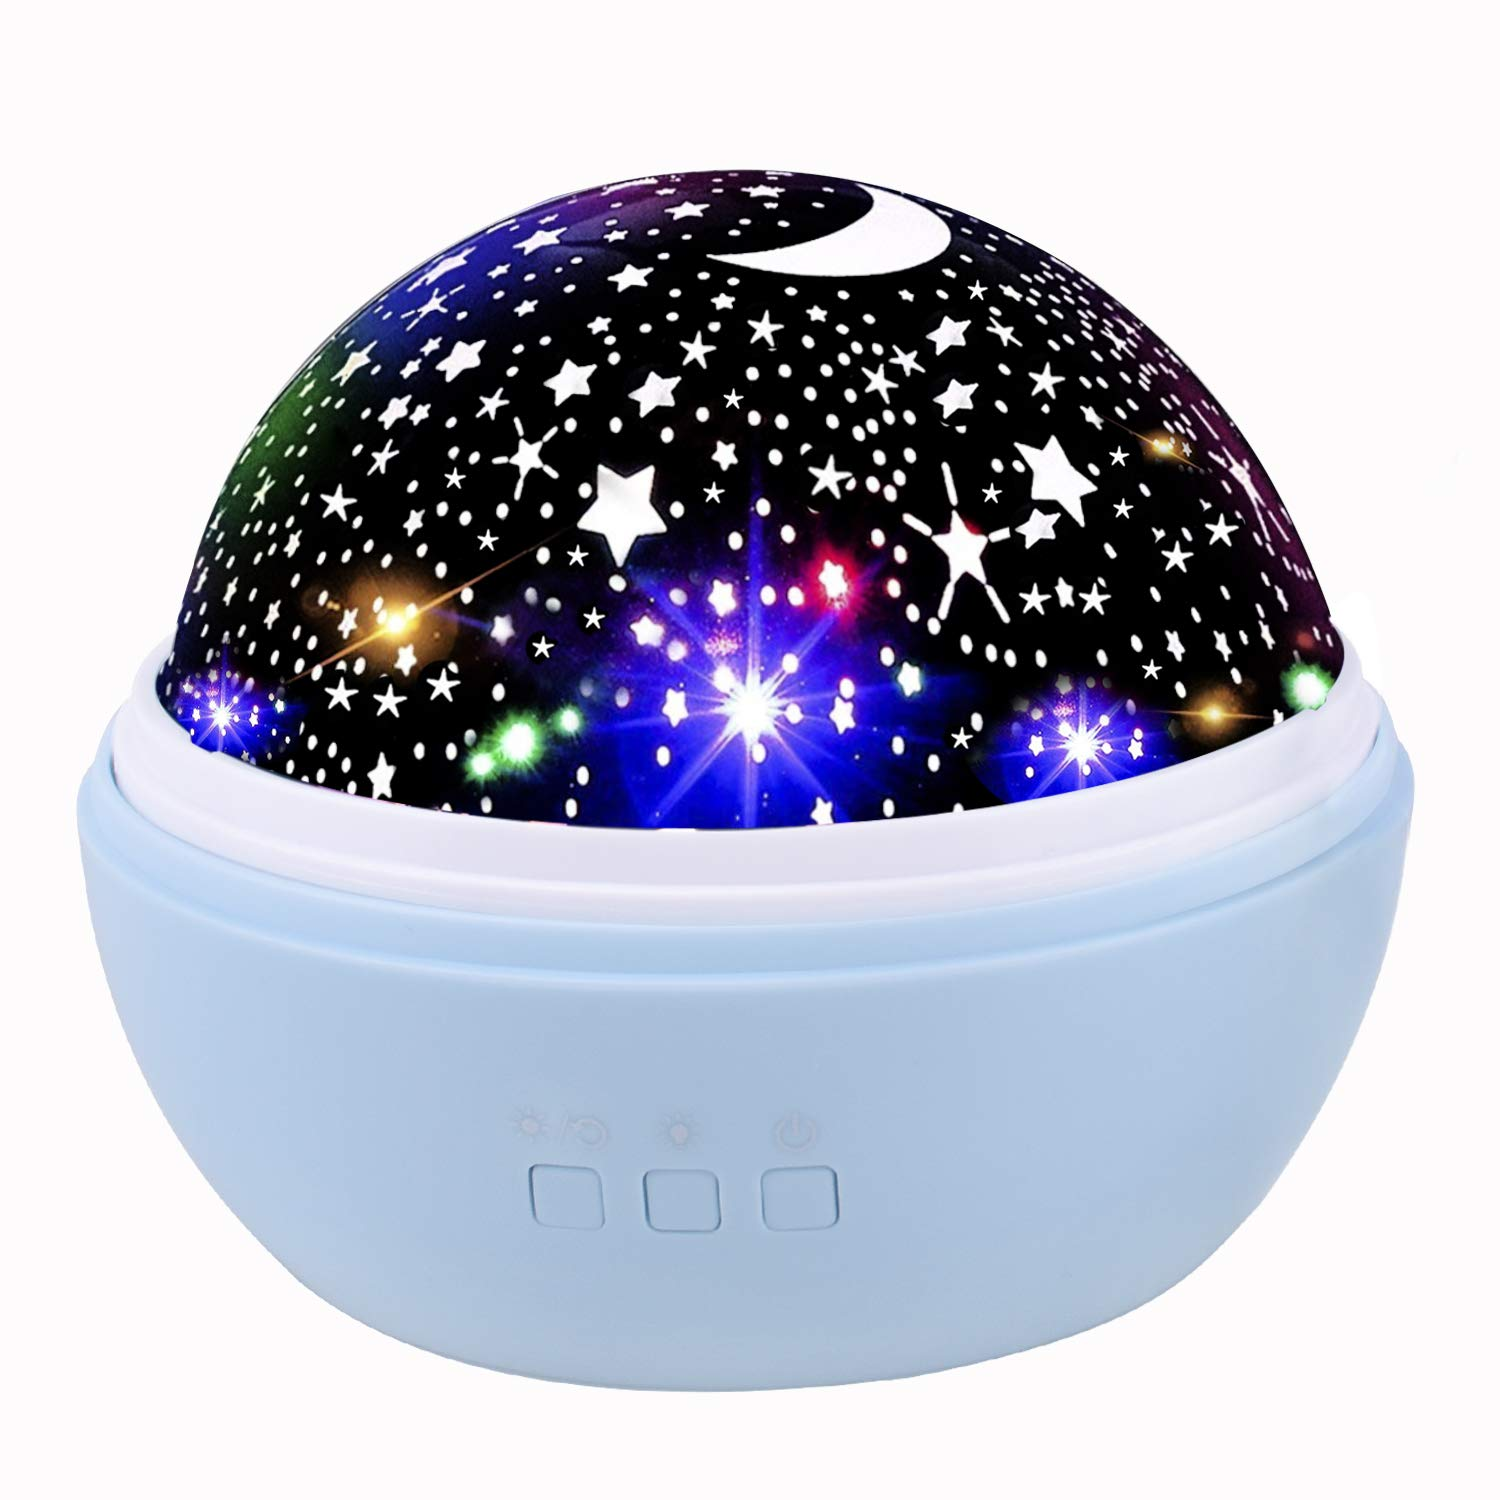 Star Night Light Kids Projection Lamp, Katosca Rotating Sea World Pattern Baby Nursery Projector Romantic Night Lights Birthday Christmas Gift for Kids 2 Films-Blue Color